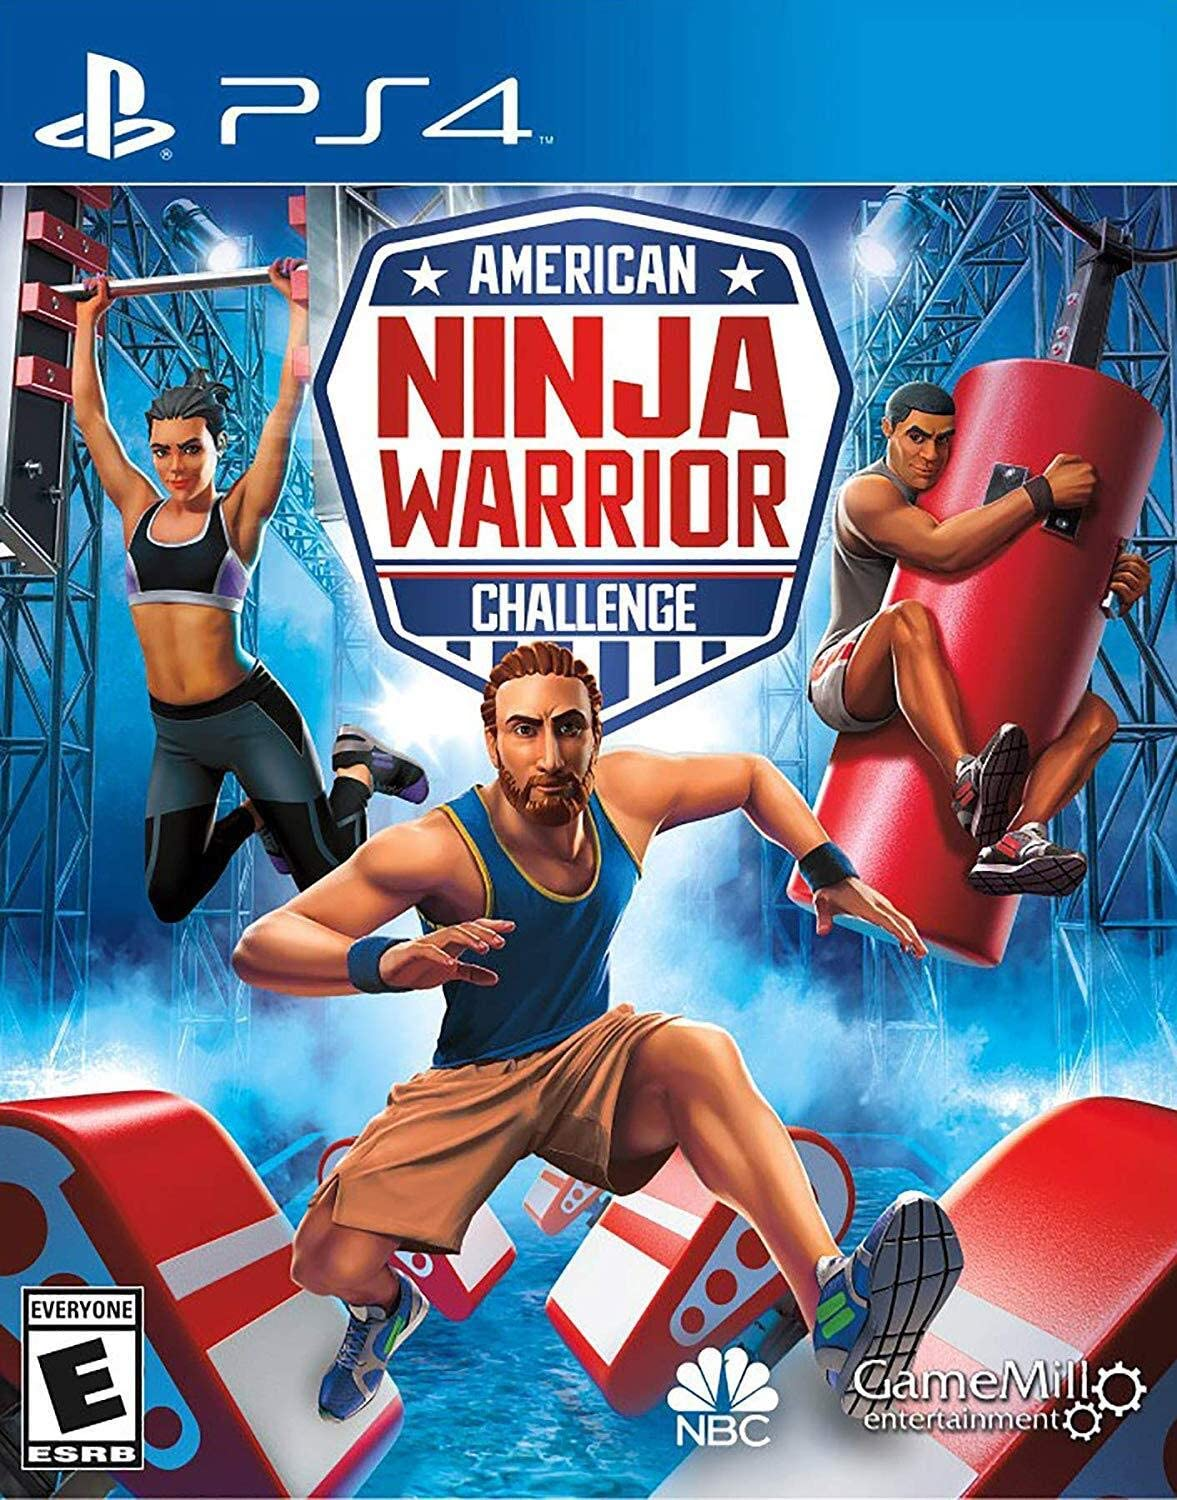 Amazon.com: American Ninja Warrior - PlayStation 4: Game ...